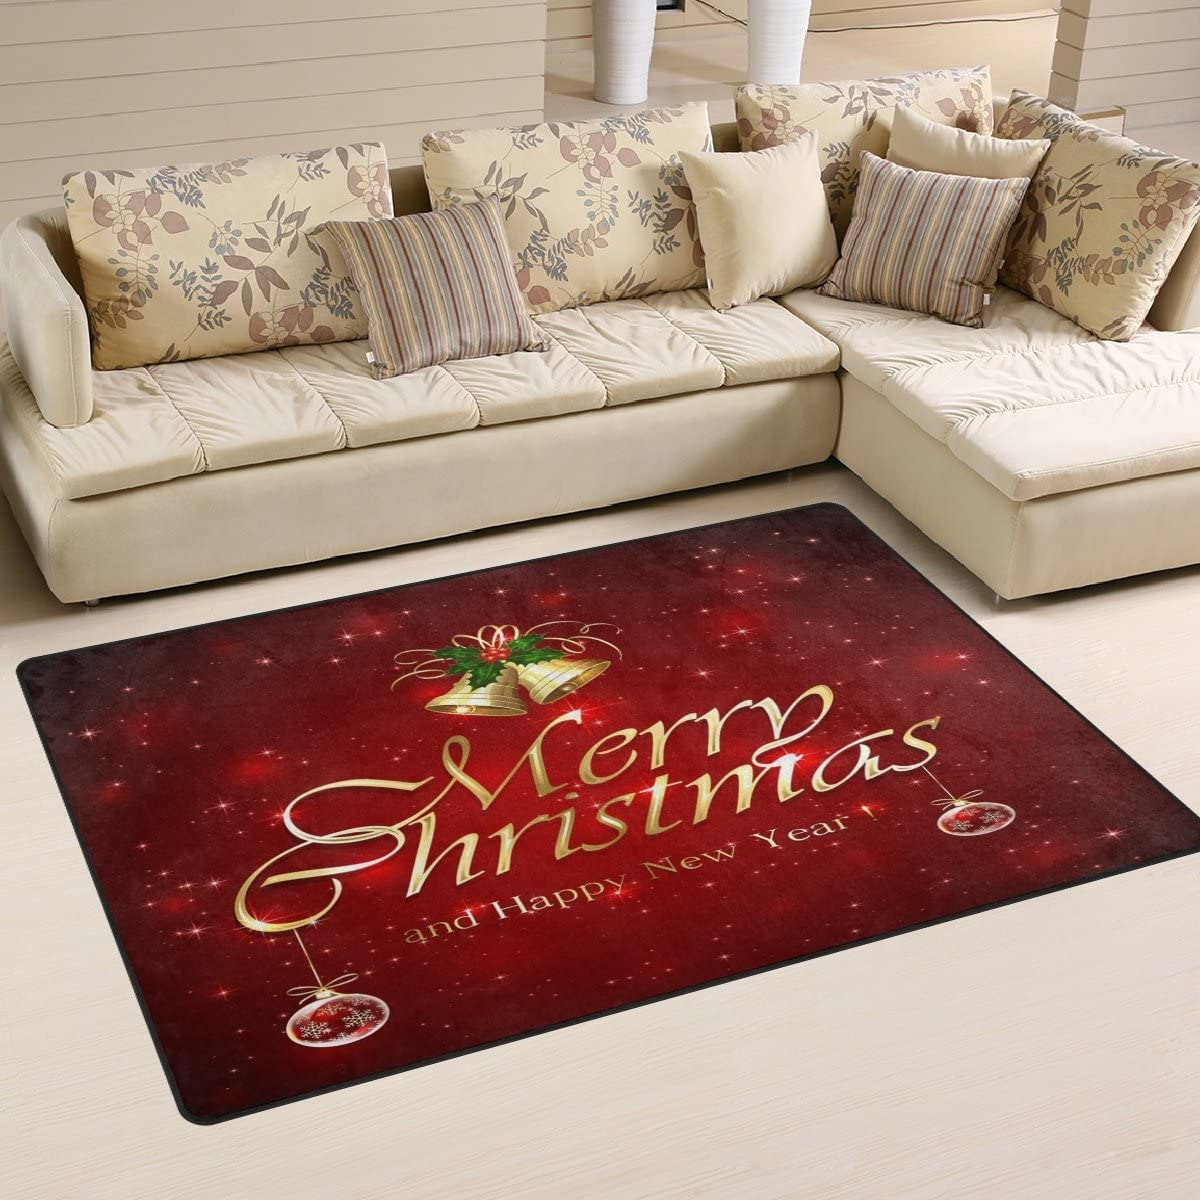 WOZO Red Starry Mery Christmas Area Rug Rugs Non-Slip Floor Mat Doormats Living Dining Room Bedroom Dorm 60 x 39 inches inches Home Decor